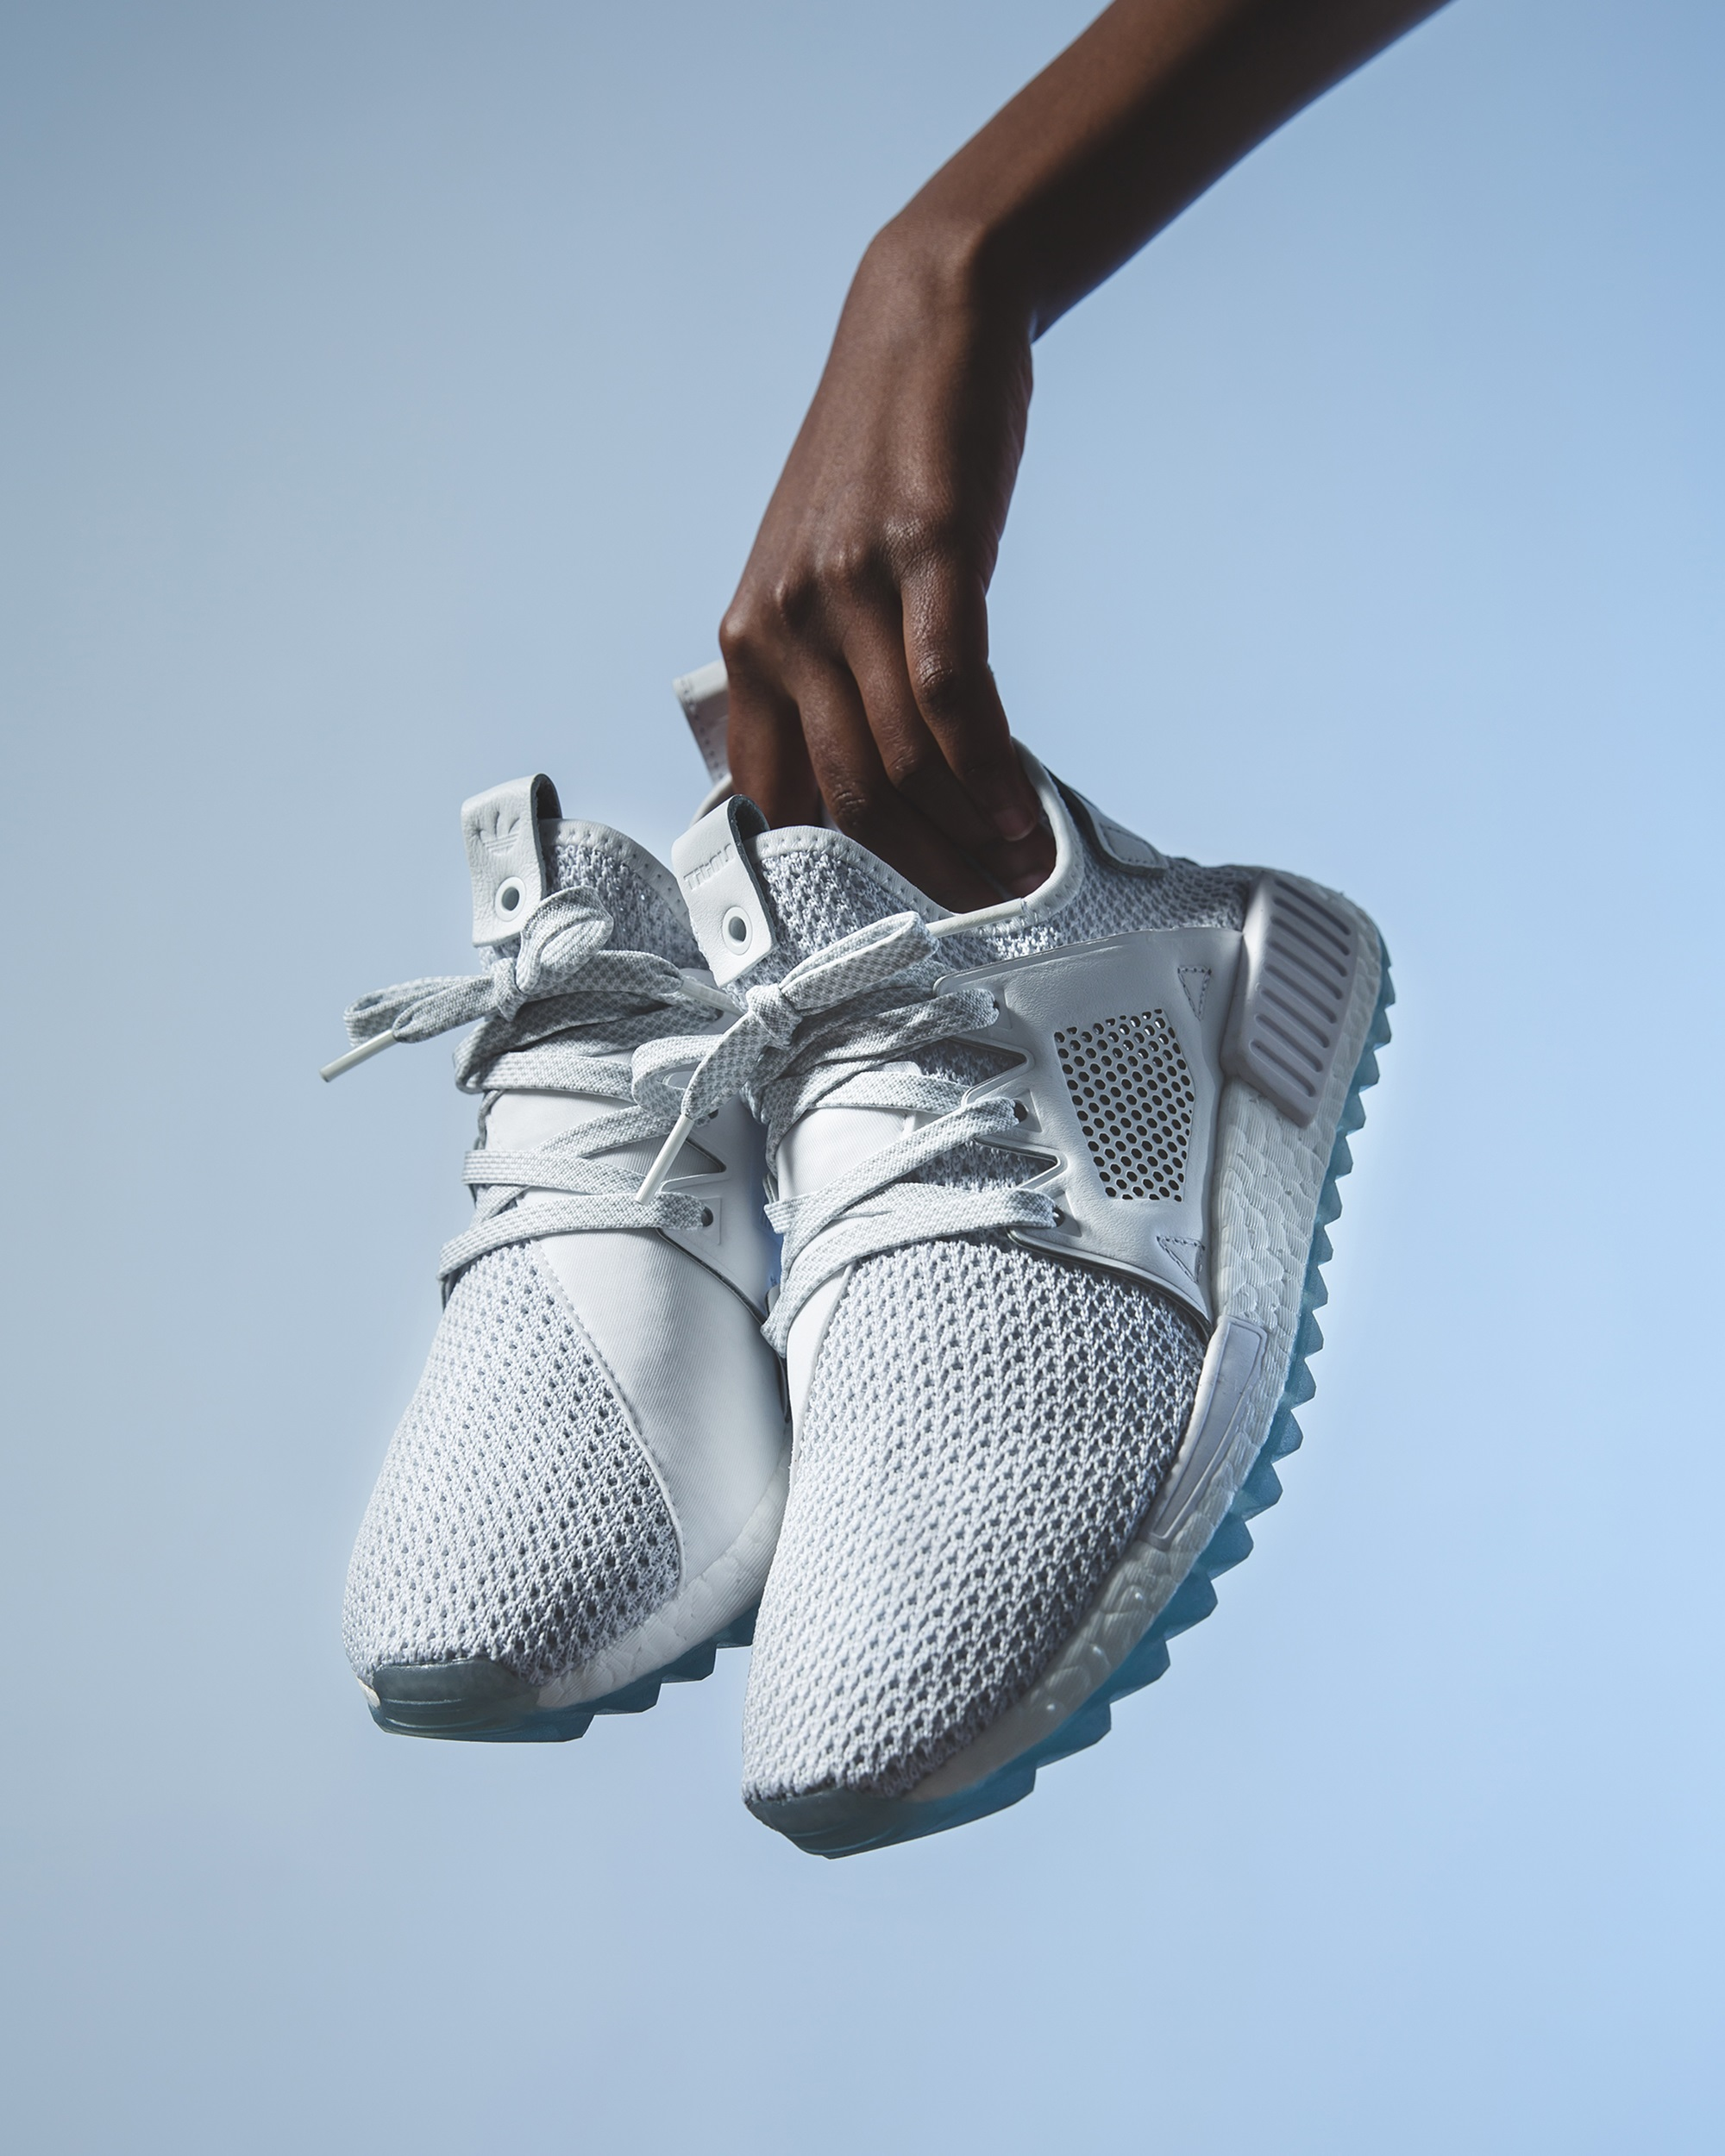 fef8e17cf adidas Consortium x Titolo NMD XR1 Trail - Supplying girls with ...